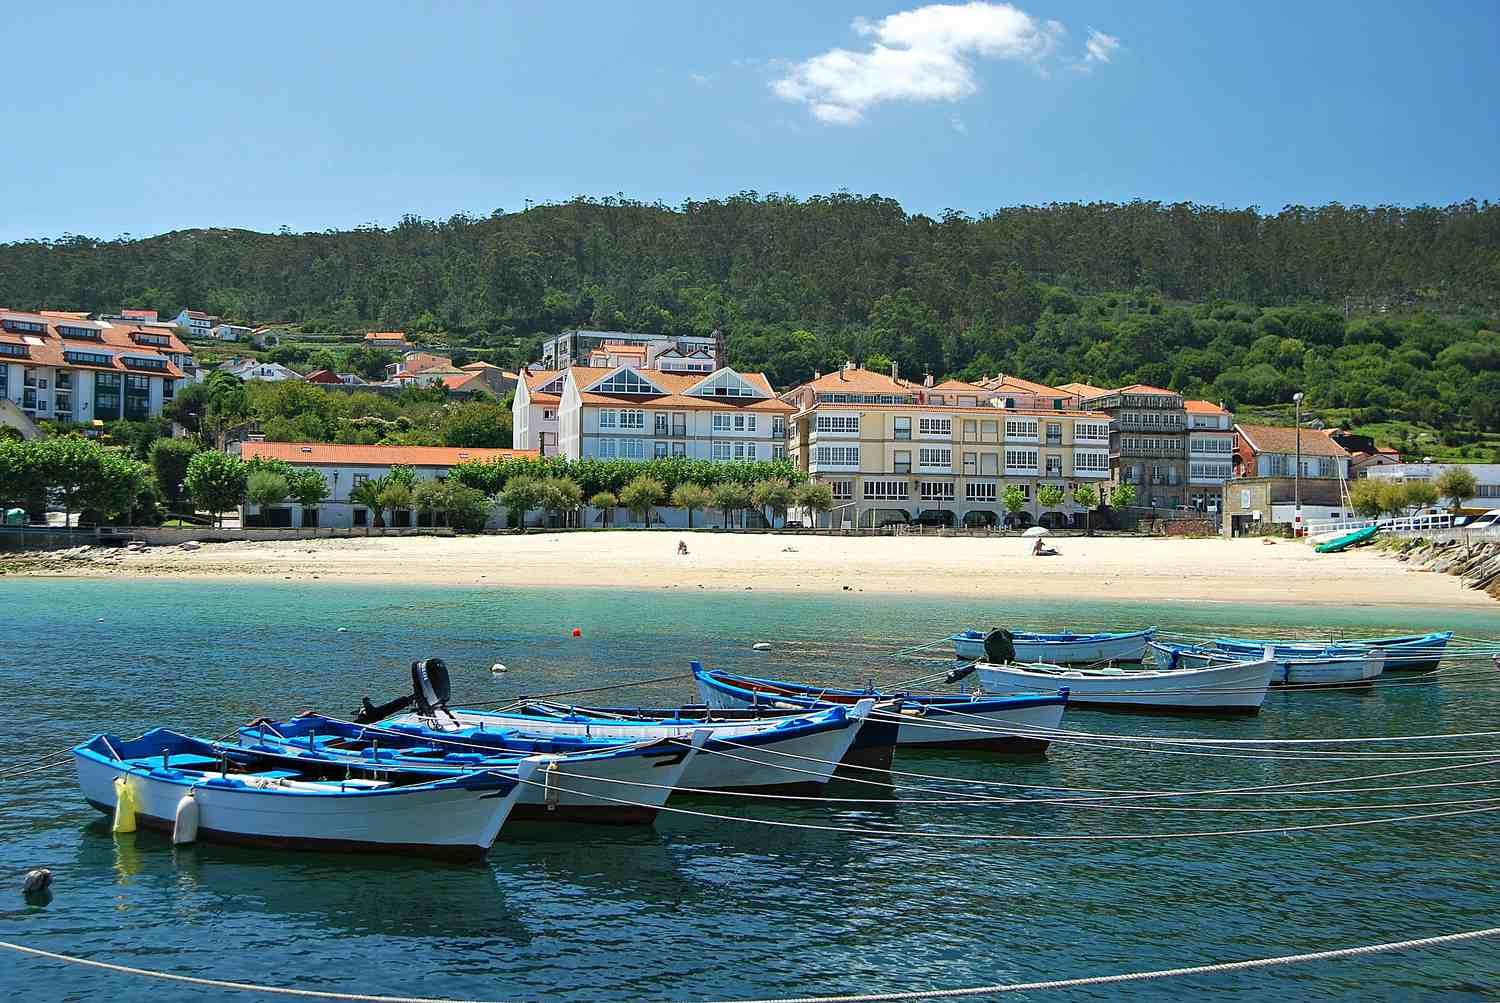 Fishing boats on the beach in Galicia, Spain